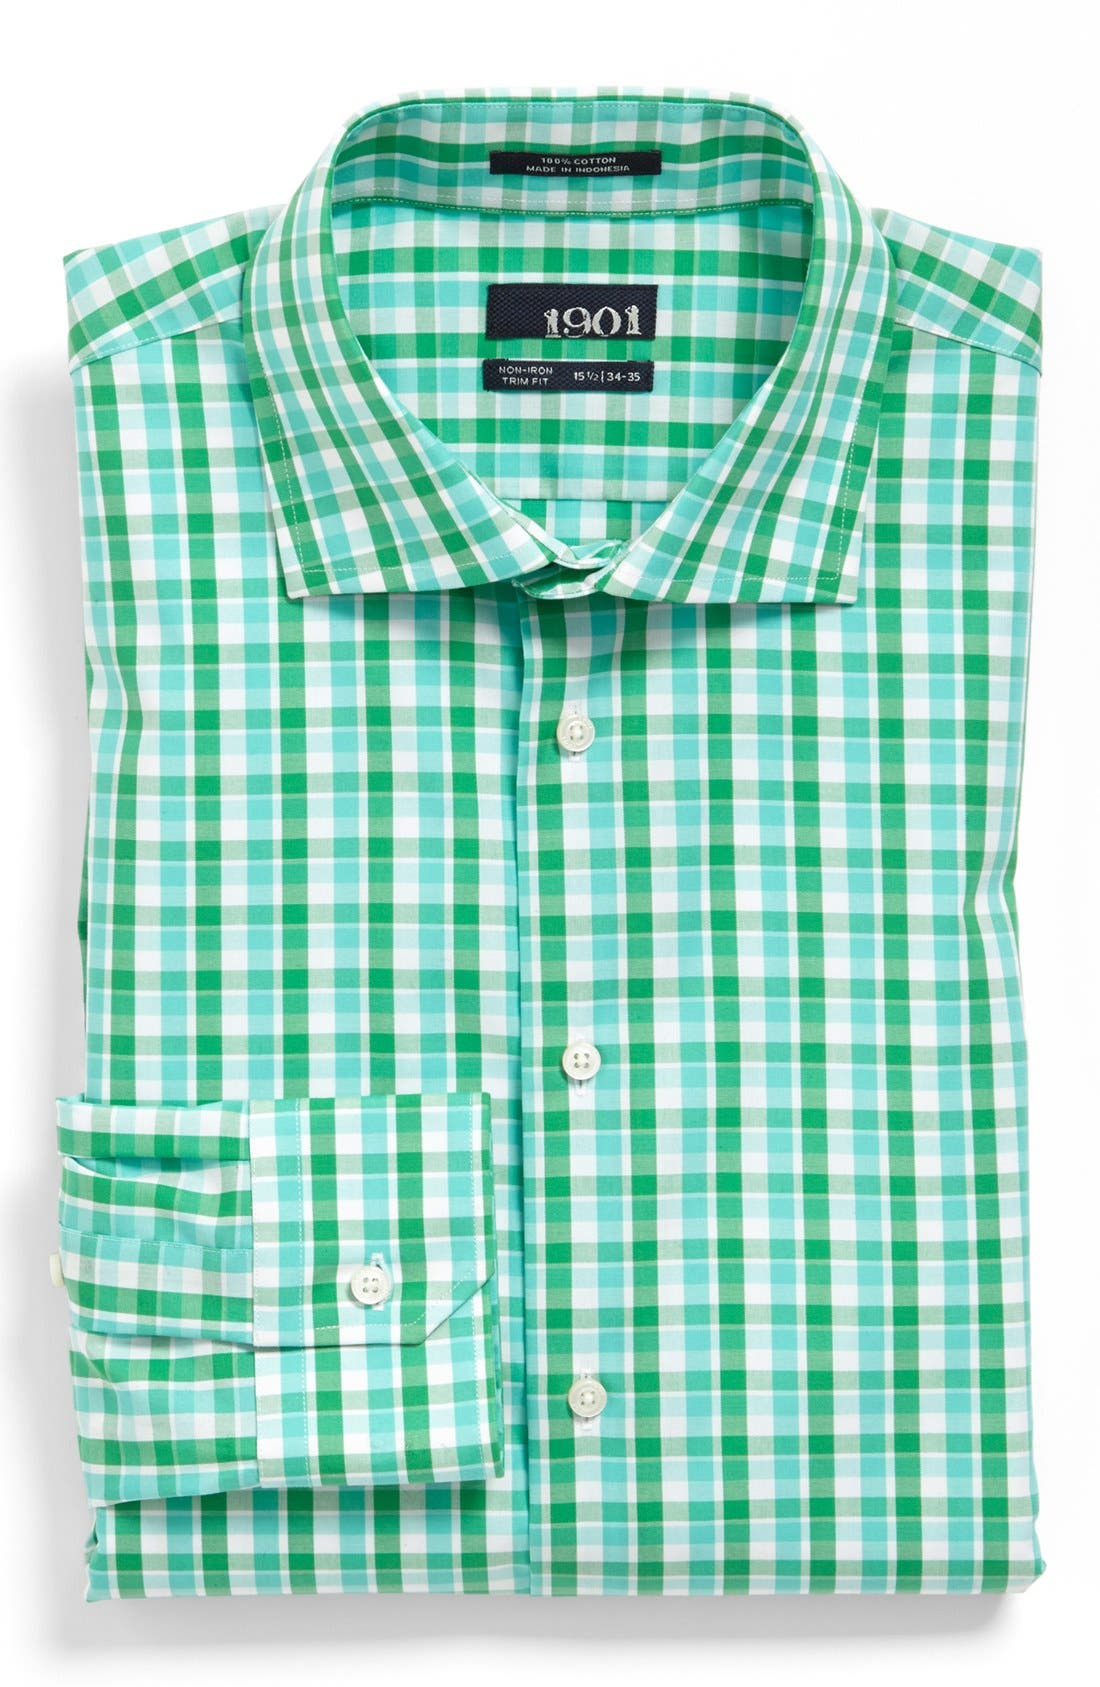 1901 Trim Fit Non-Iron Check Dress Shirt, Main, color, 300